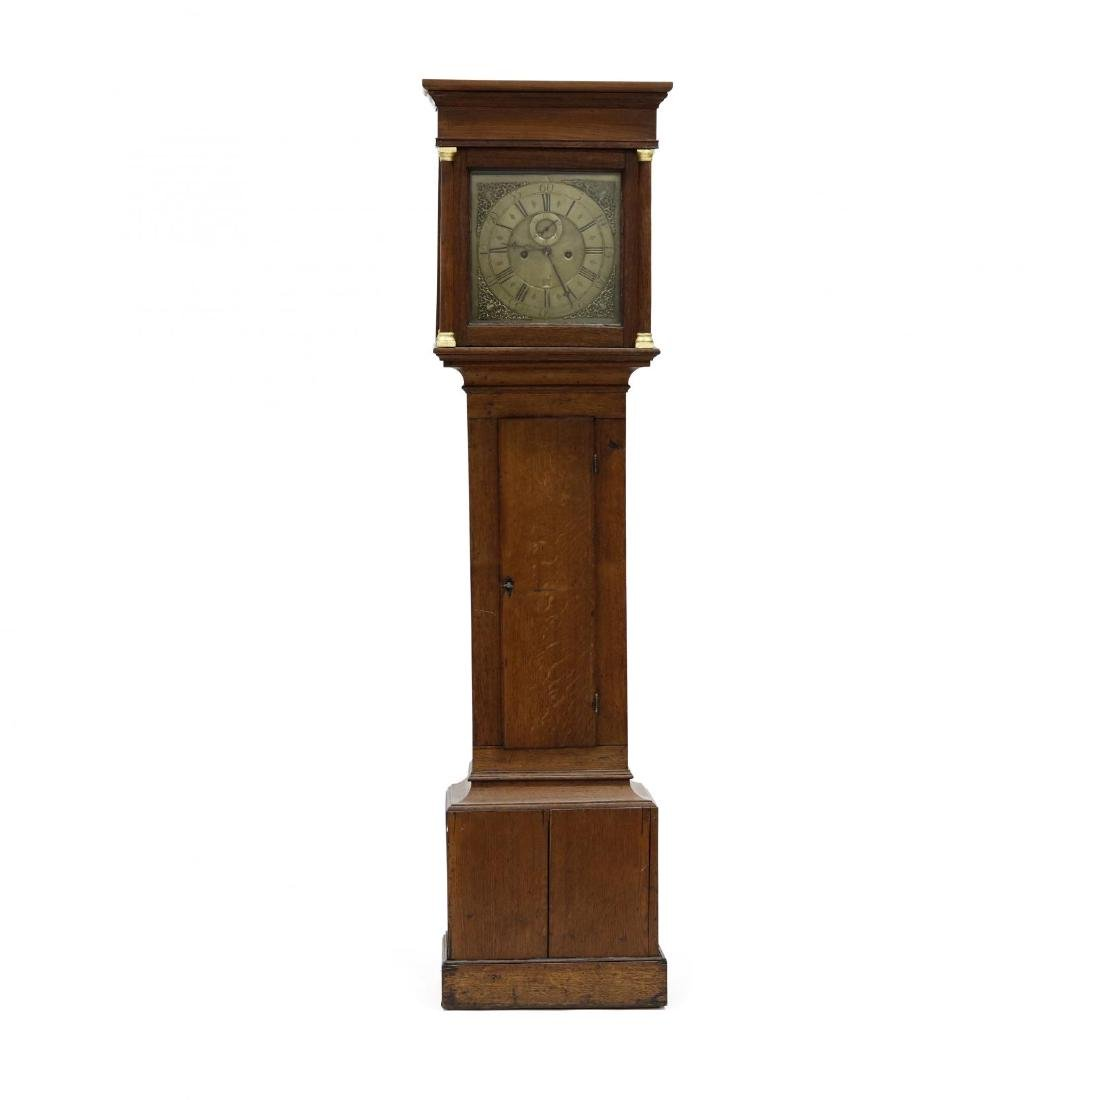 English Tall Case Clock, Richard Kenyon